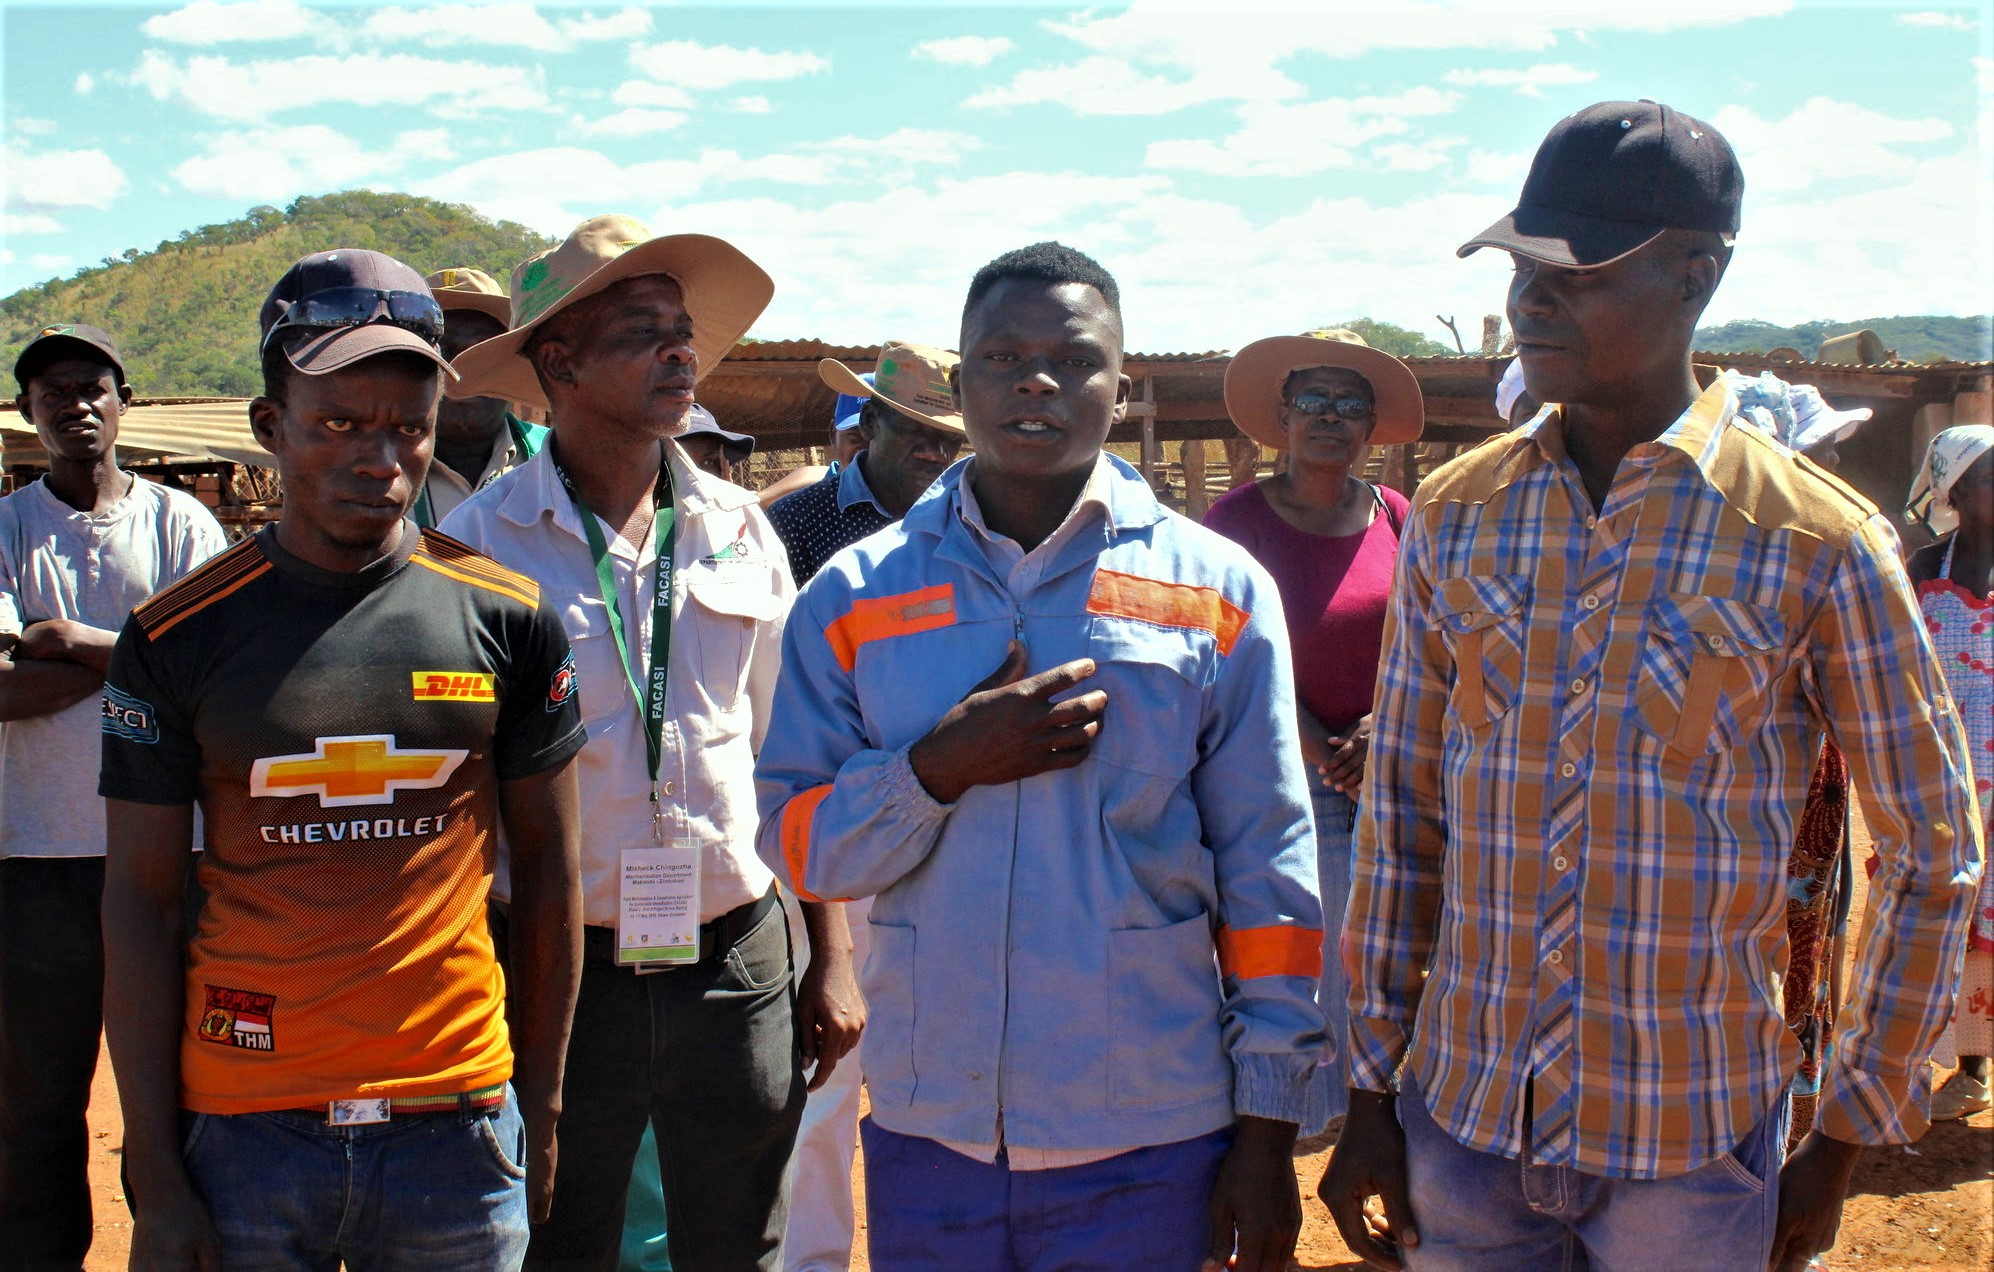 Targeting youth in interventions such as the Farm Mechanization and Conservation Agriculture for Sustainable Intensification (FACASI) project provides pathways for training in appropriate mechanized solutions to support farmers in rural areas. The enterprising Mwanga Youth Group members Pinnot Karwizi (28), Shepherd Karwizi (26) and Masimba Mawire (32) provide grain shelling services to farmers in Makonde District, Zimbabwe. (Photo: Shiela Chikulo/CIMMYT)